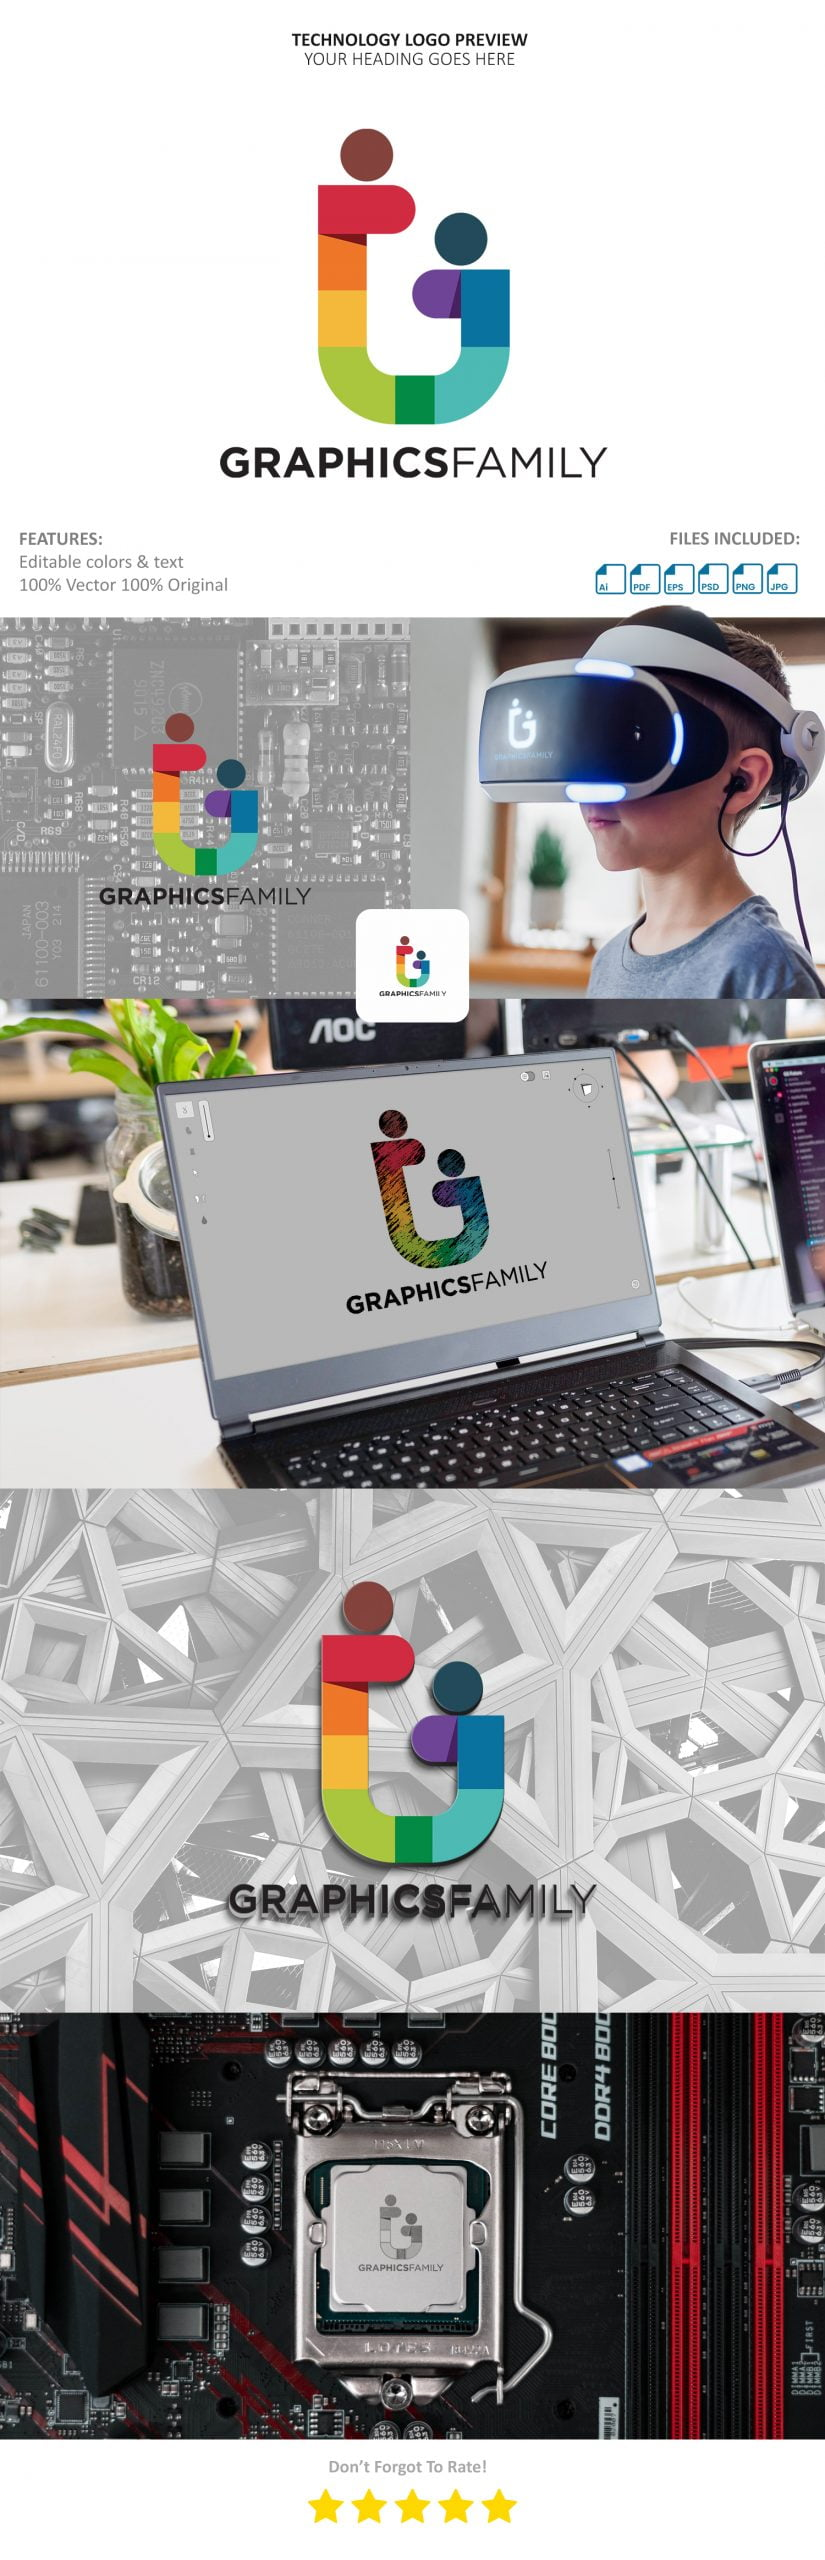 Technology Logo Preview Template